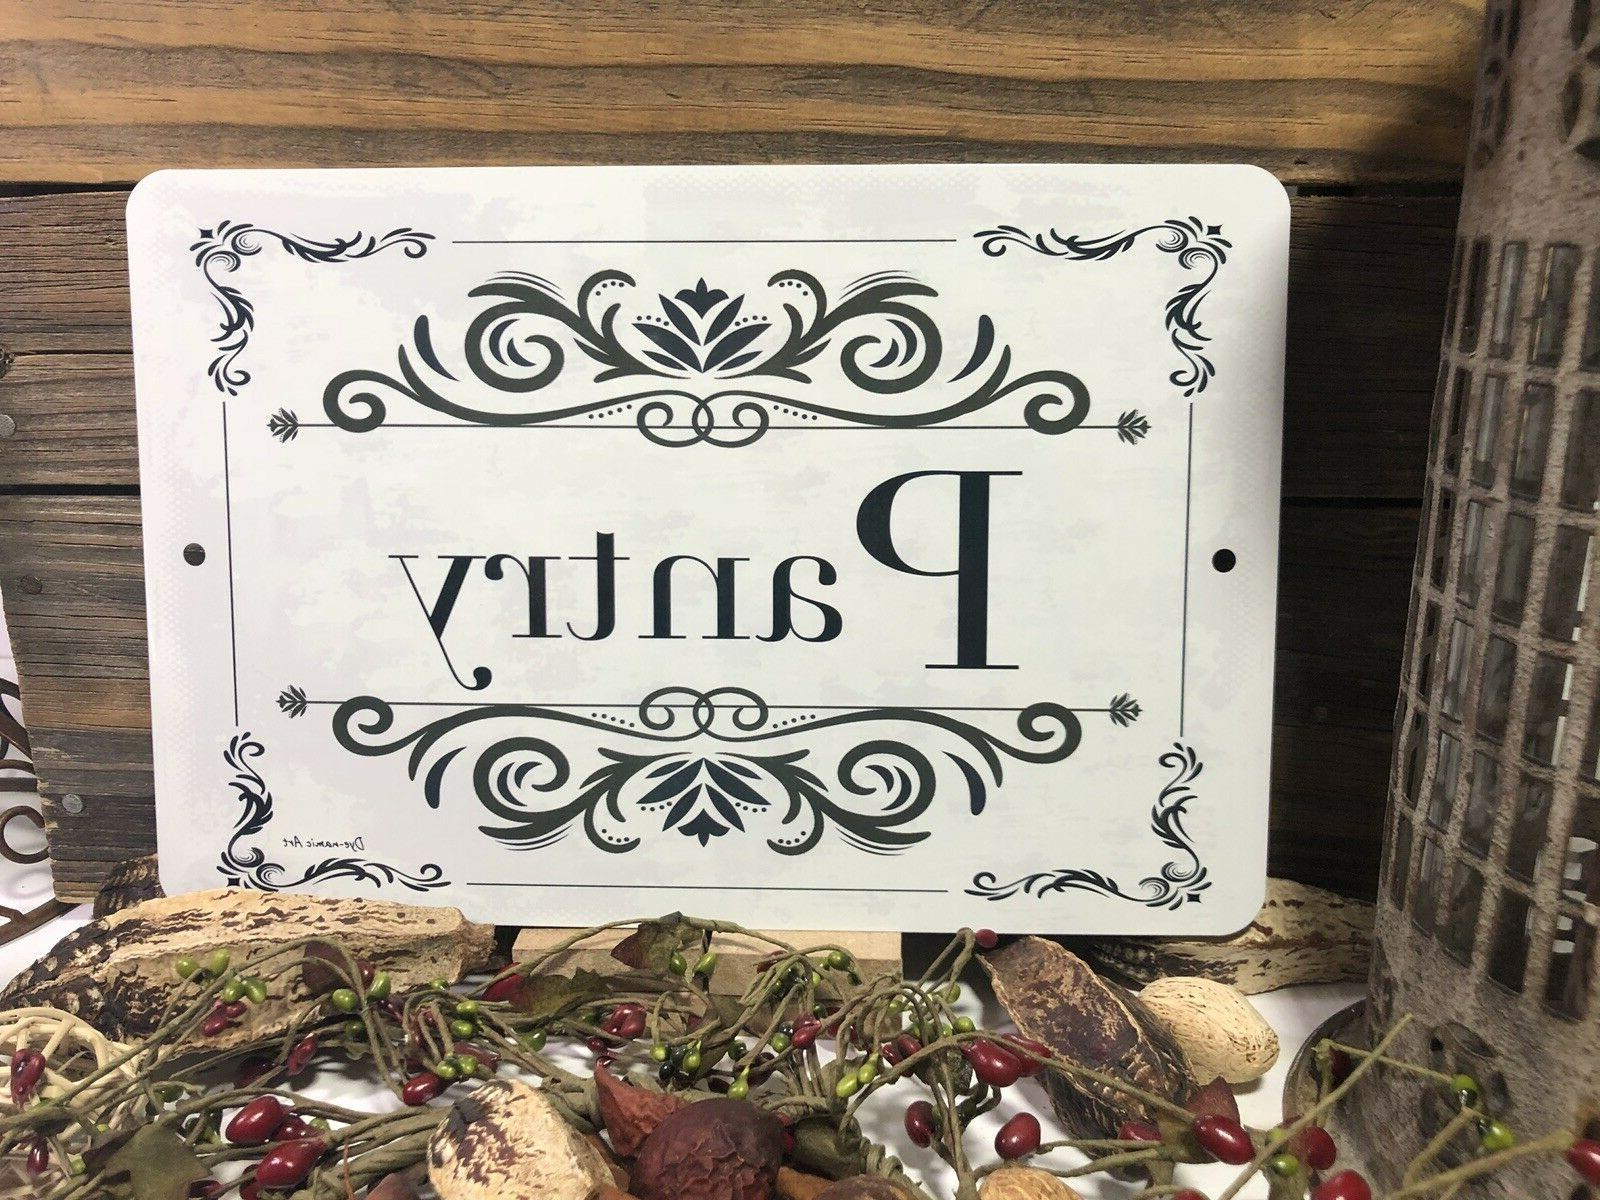 Pantry - Kitchen - 12x8 - Decorative Sign